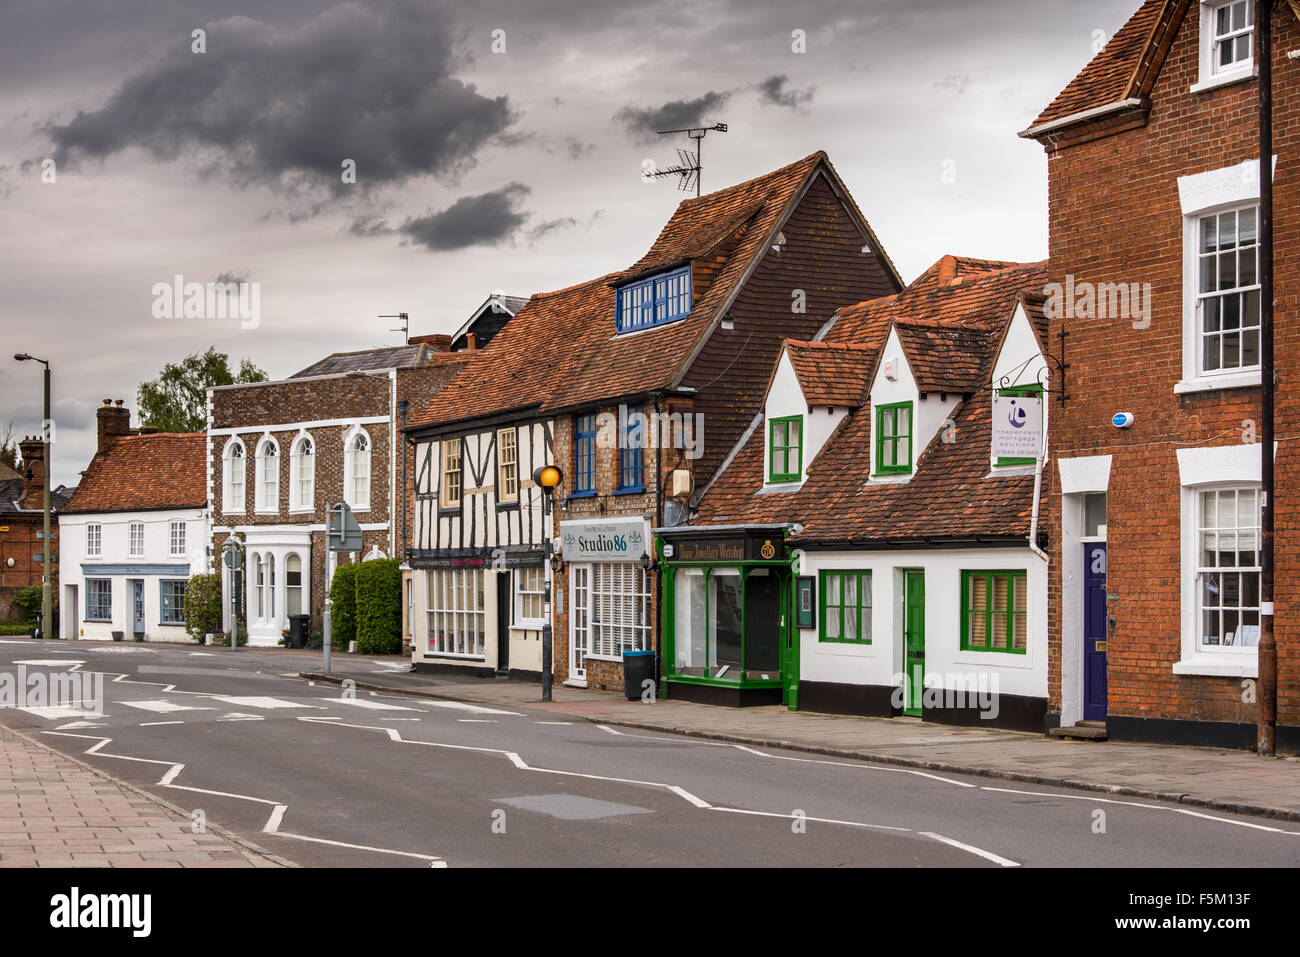 Thame High Street - Stock Image